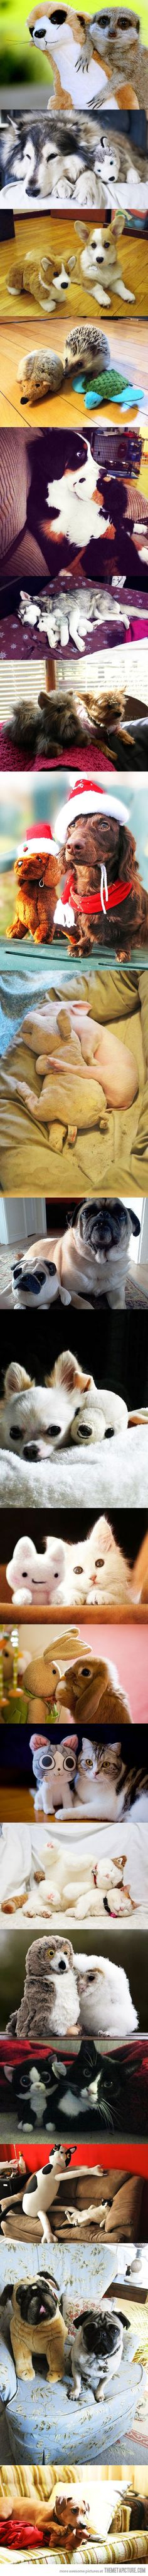 Animals and their stuffed counterpart. This makes me smile! :)